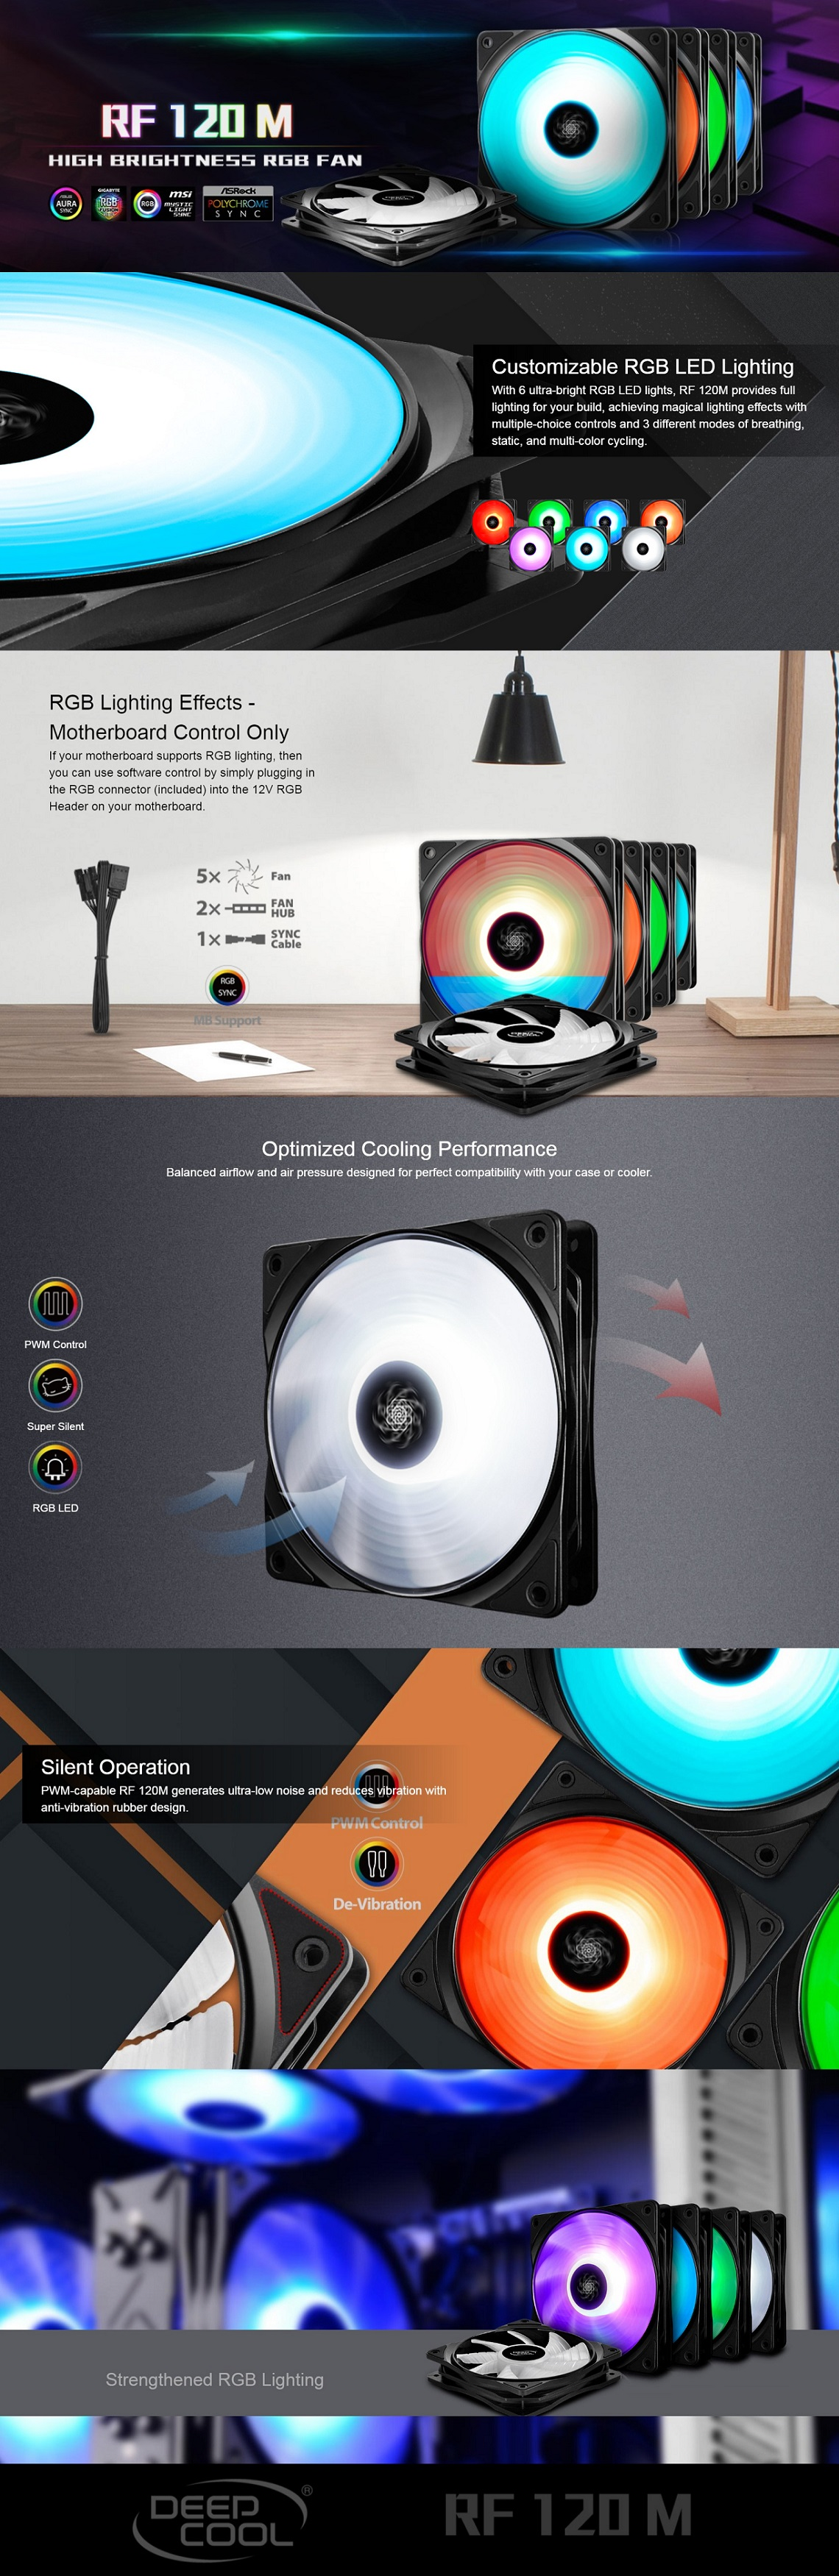 Deepcool RF 120M 120mm High Brightness RGB Fan - 5 Fans & 2 Fan Hubs, Sync Cable